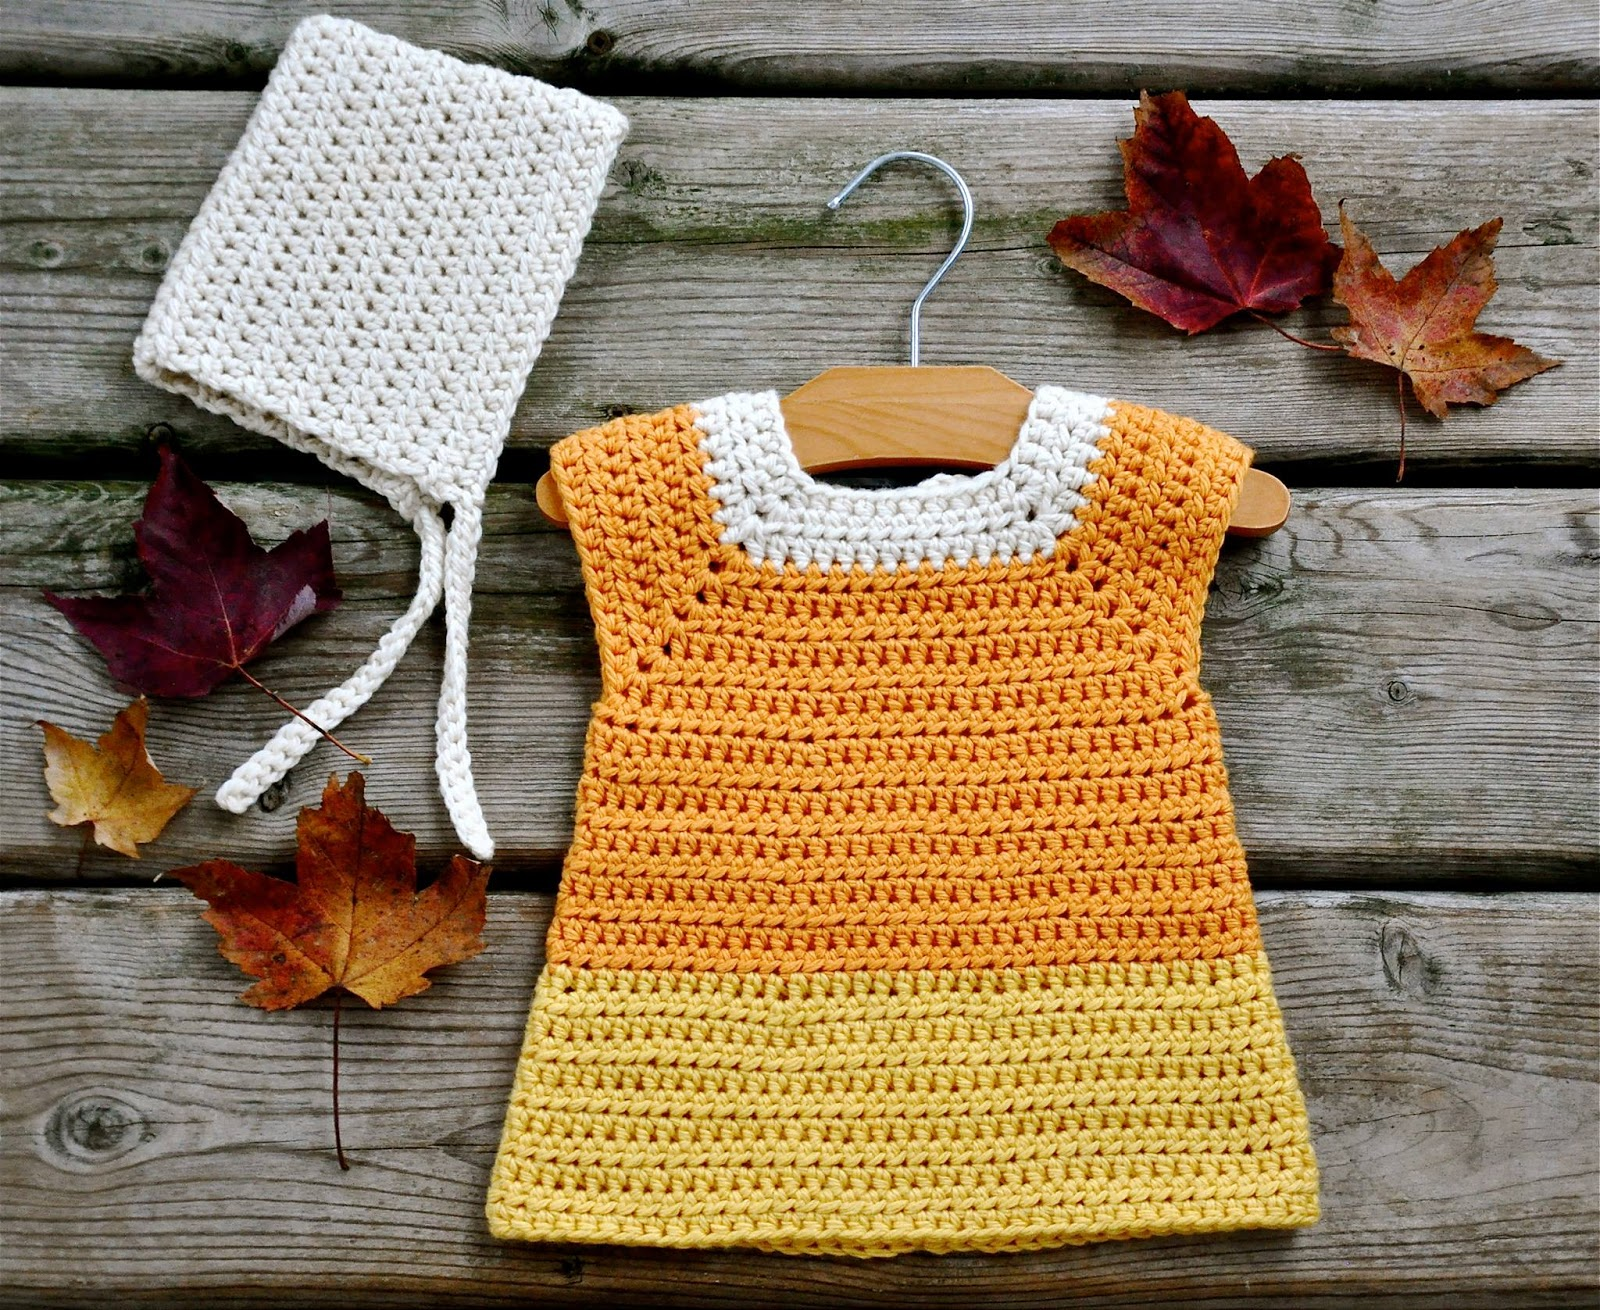 Ball hank n skein free pattern candy corn crochet costume free pattern candy corn crochet costume bankloansurffo Image collections